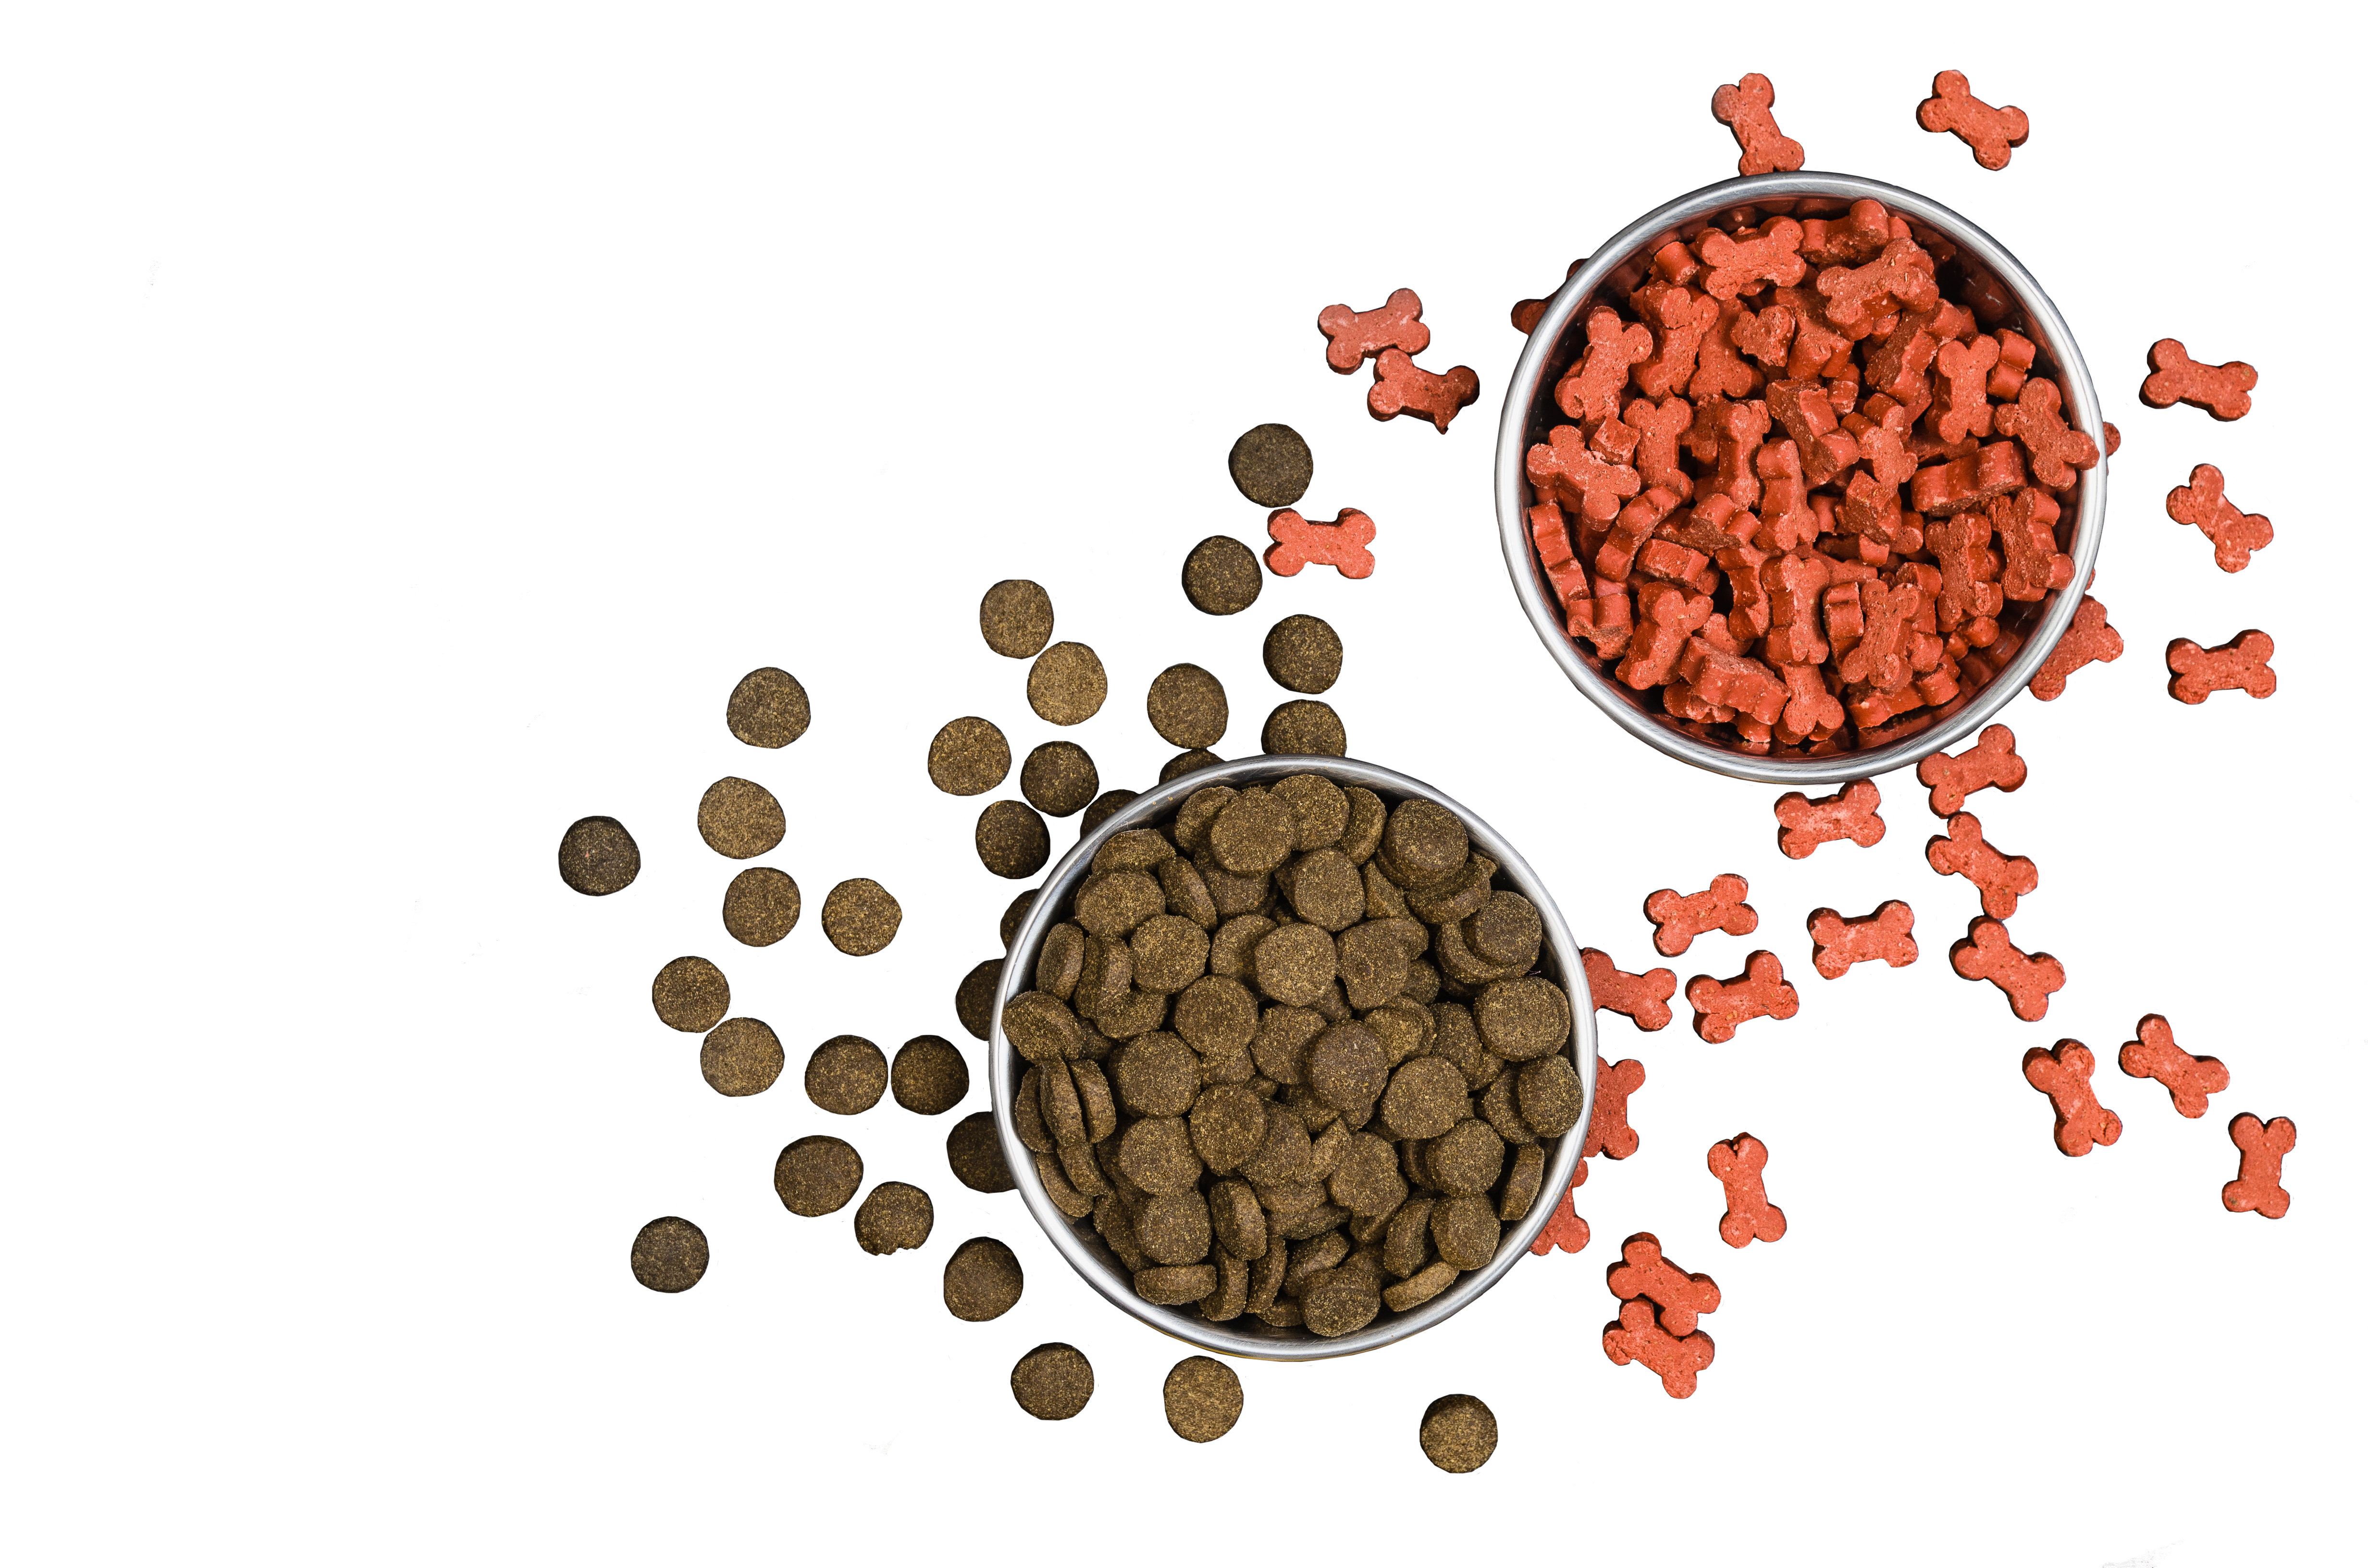 Two kinds of dog food in two different bowls